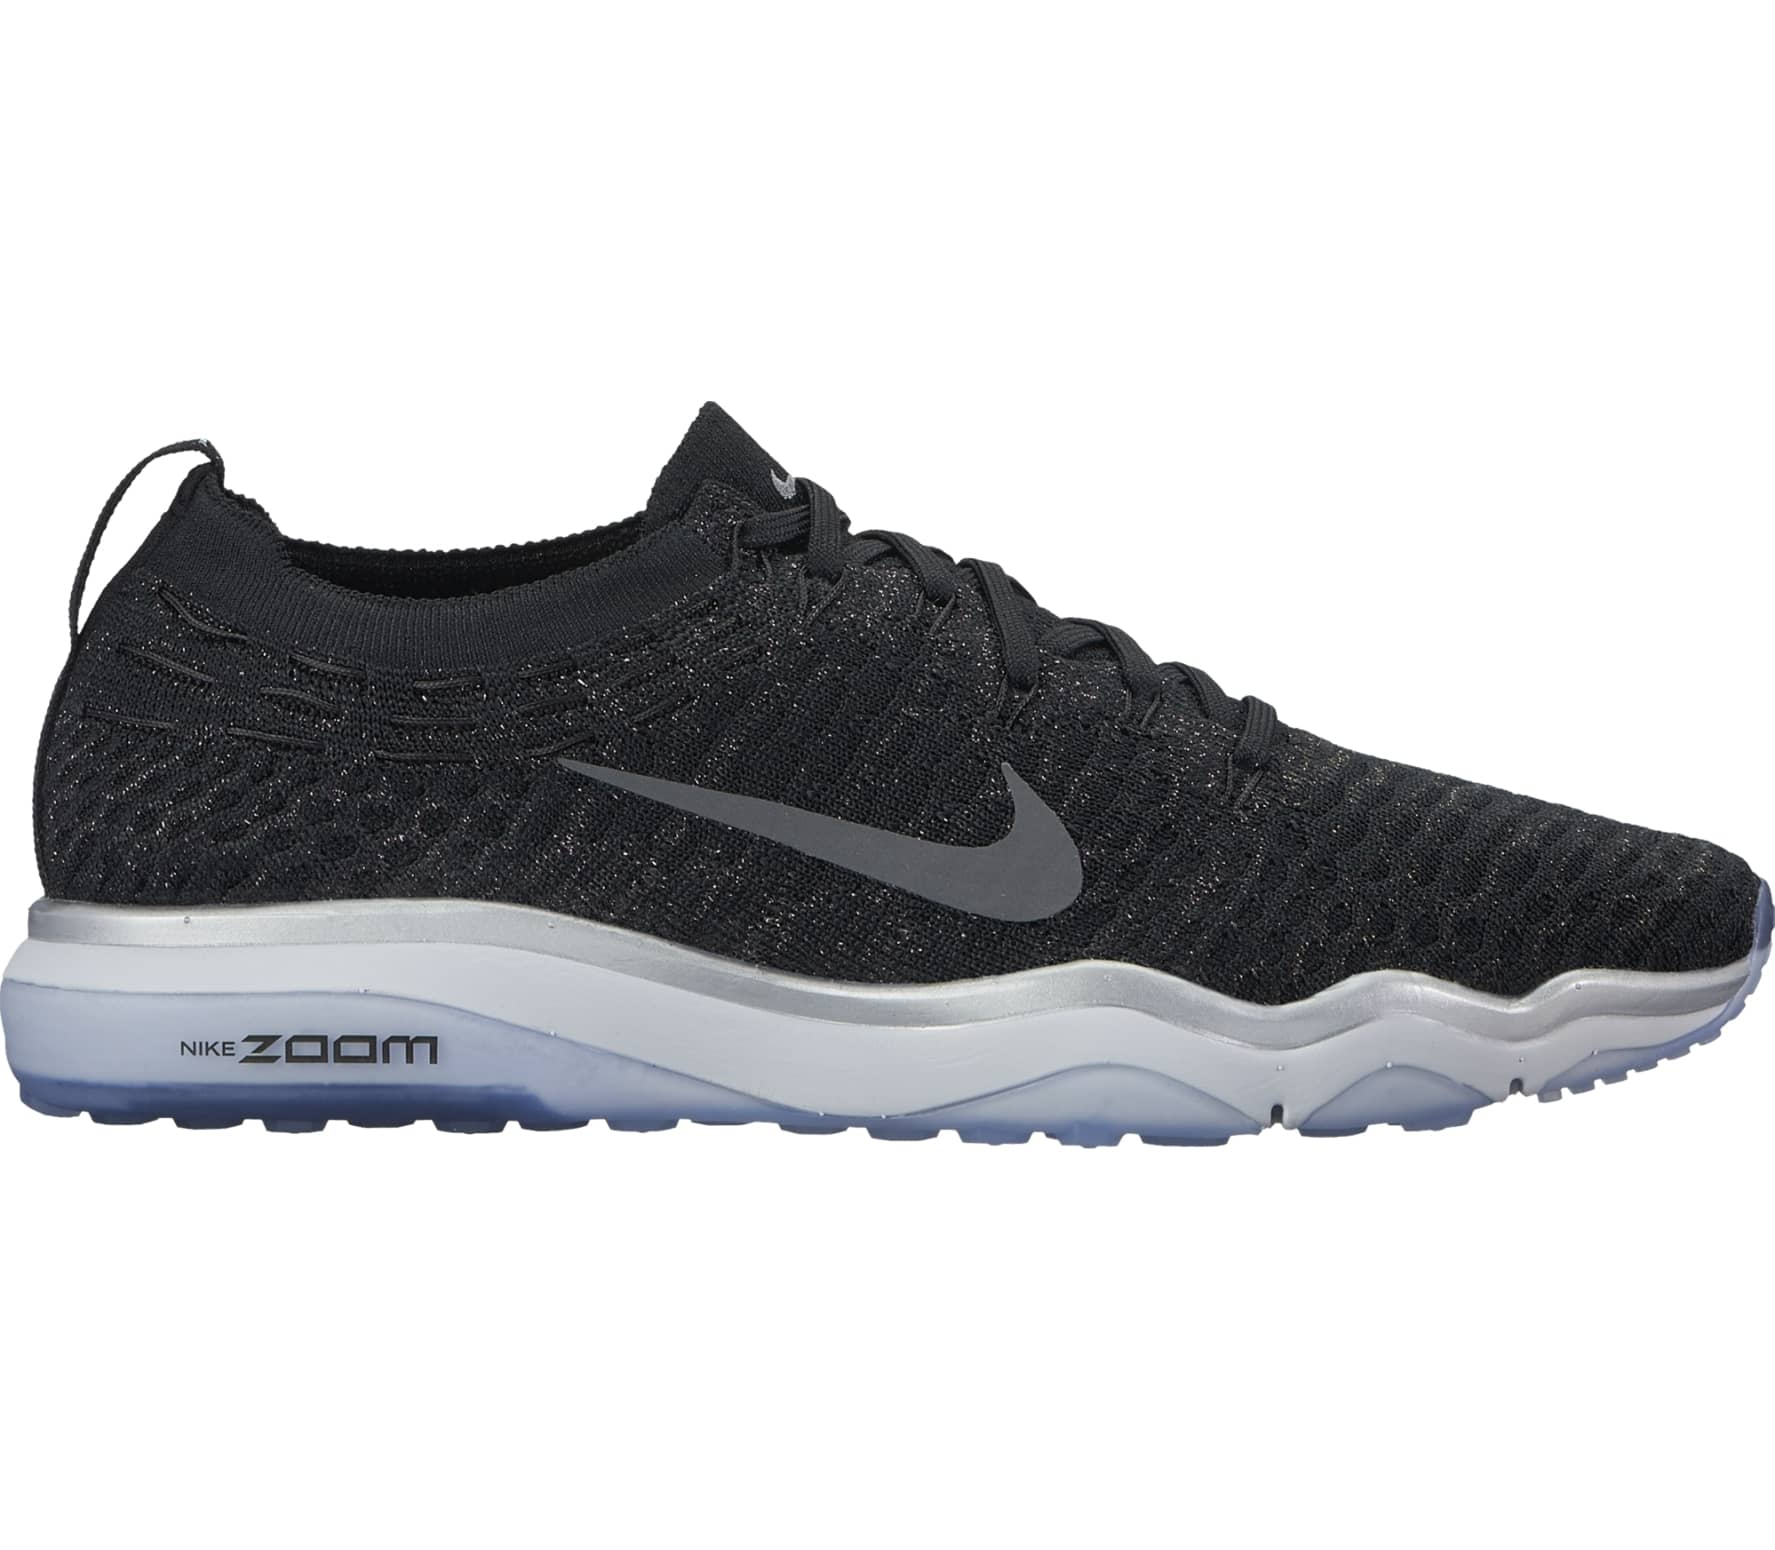 outlet store 4c6f2 71241 Nike - Air Zoom Fearless Flyknit Metallic Dames training Shoe (zwart/wit)